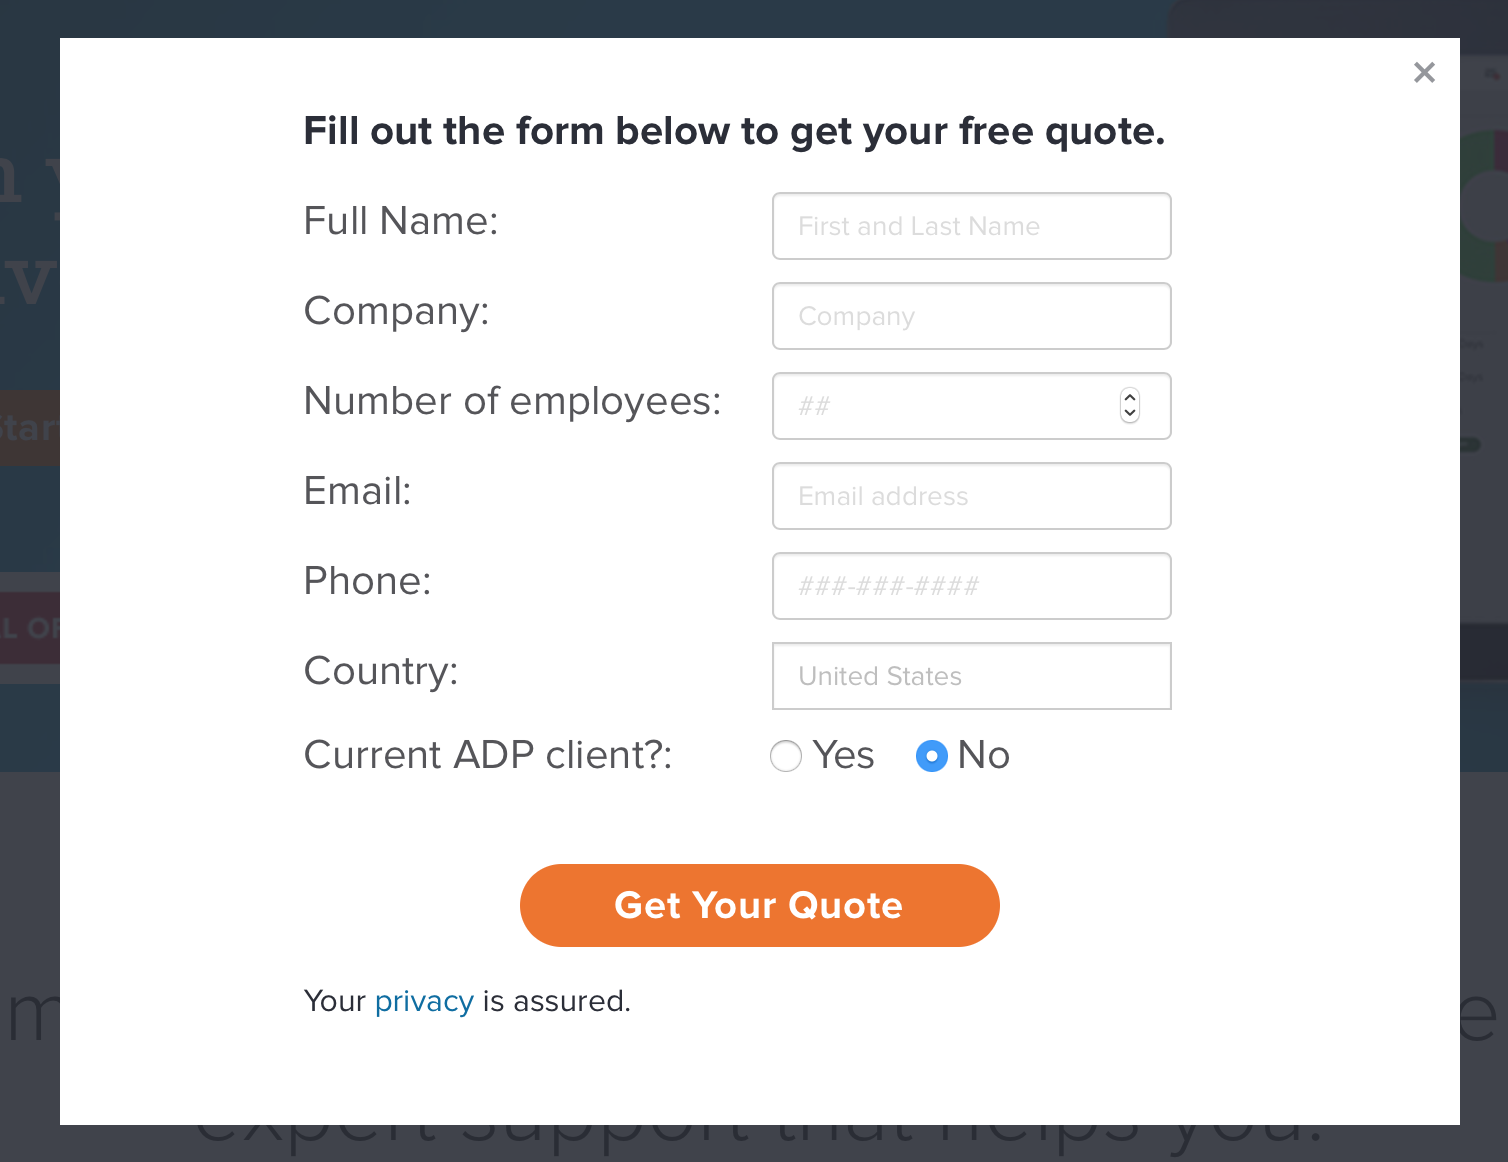 contact form with name, email, phone number, etc